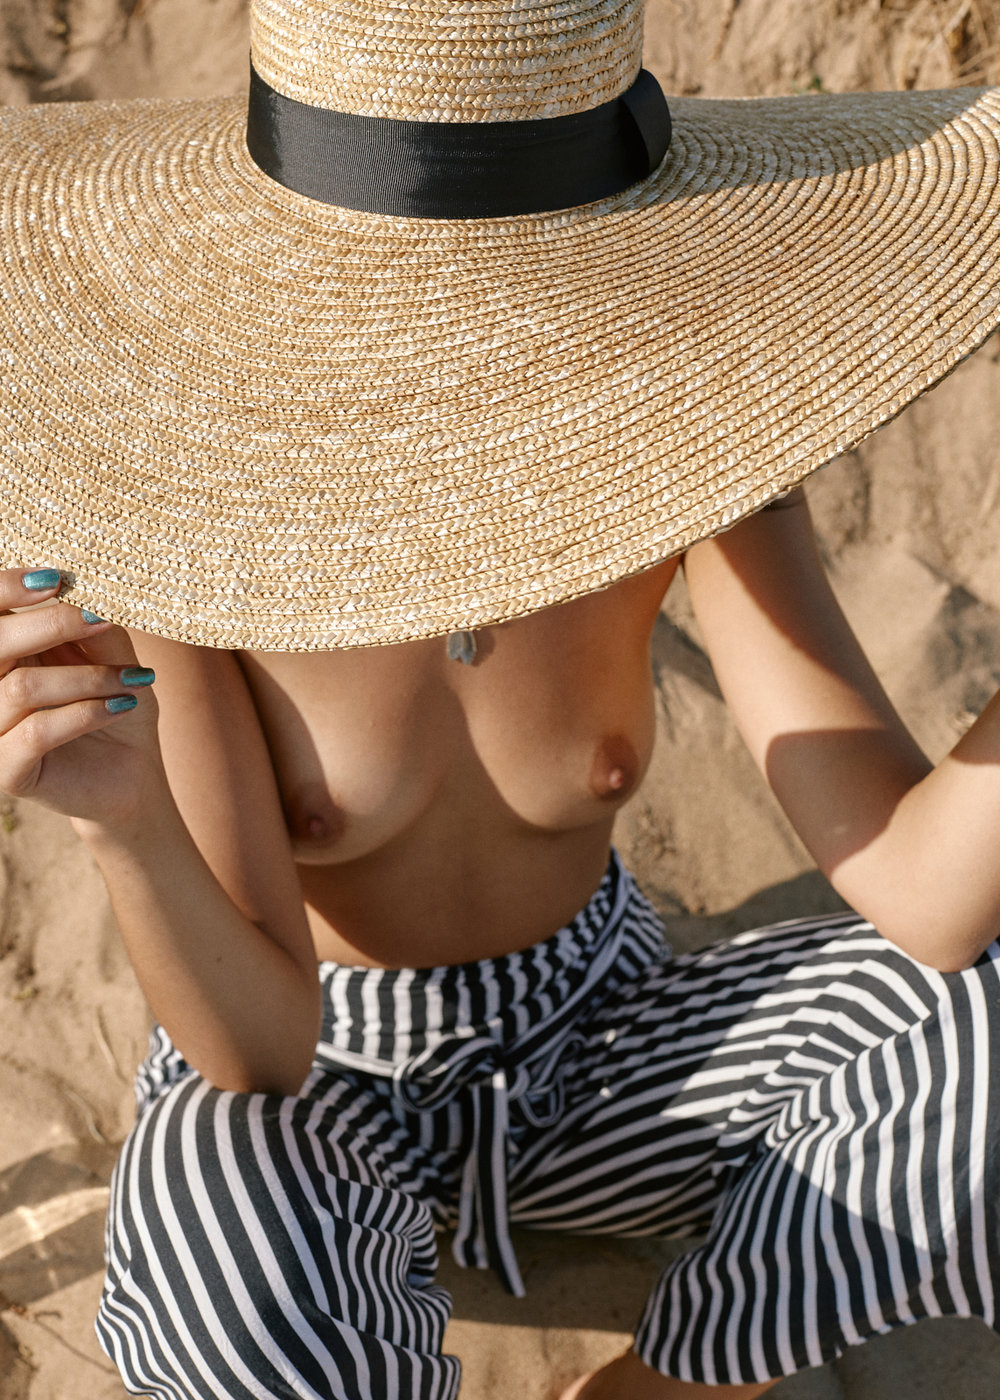 Sophie A Beach - June 2018 - 0224 web.jpg